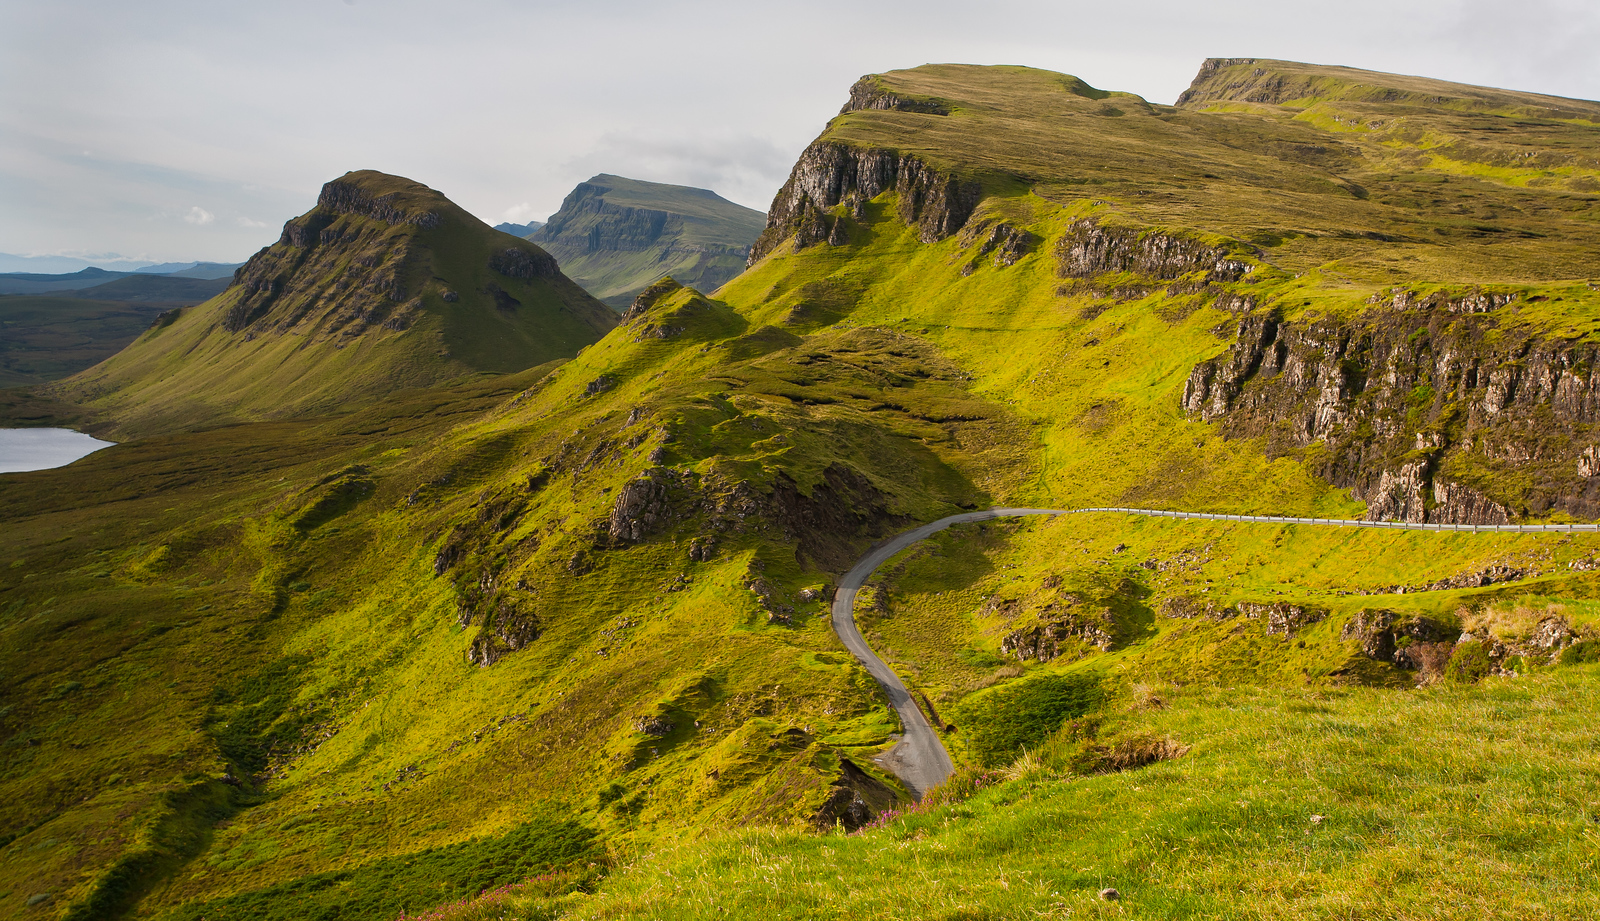 Trotternish Ridge, Isle of Skye